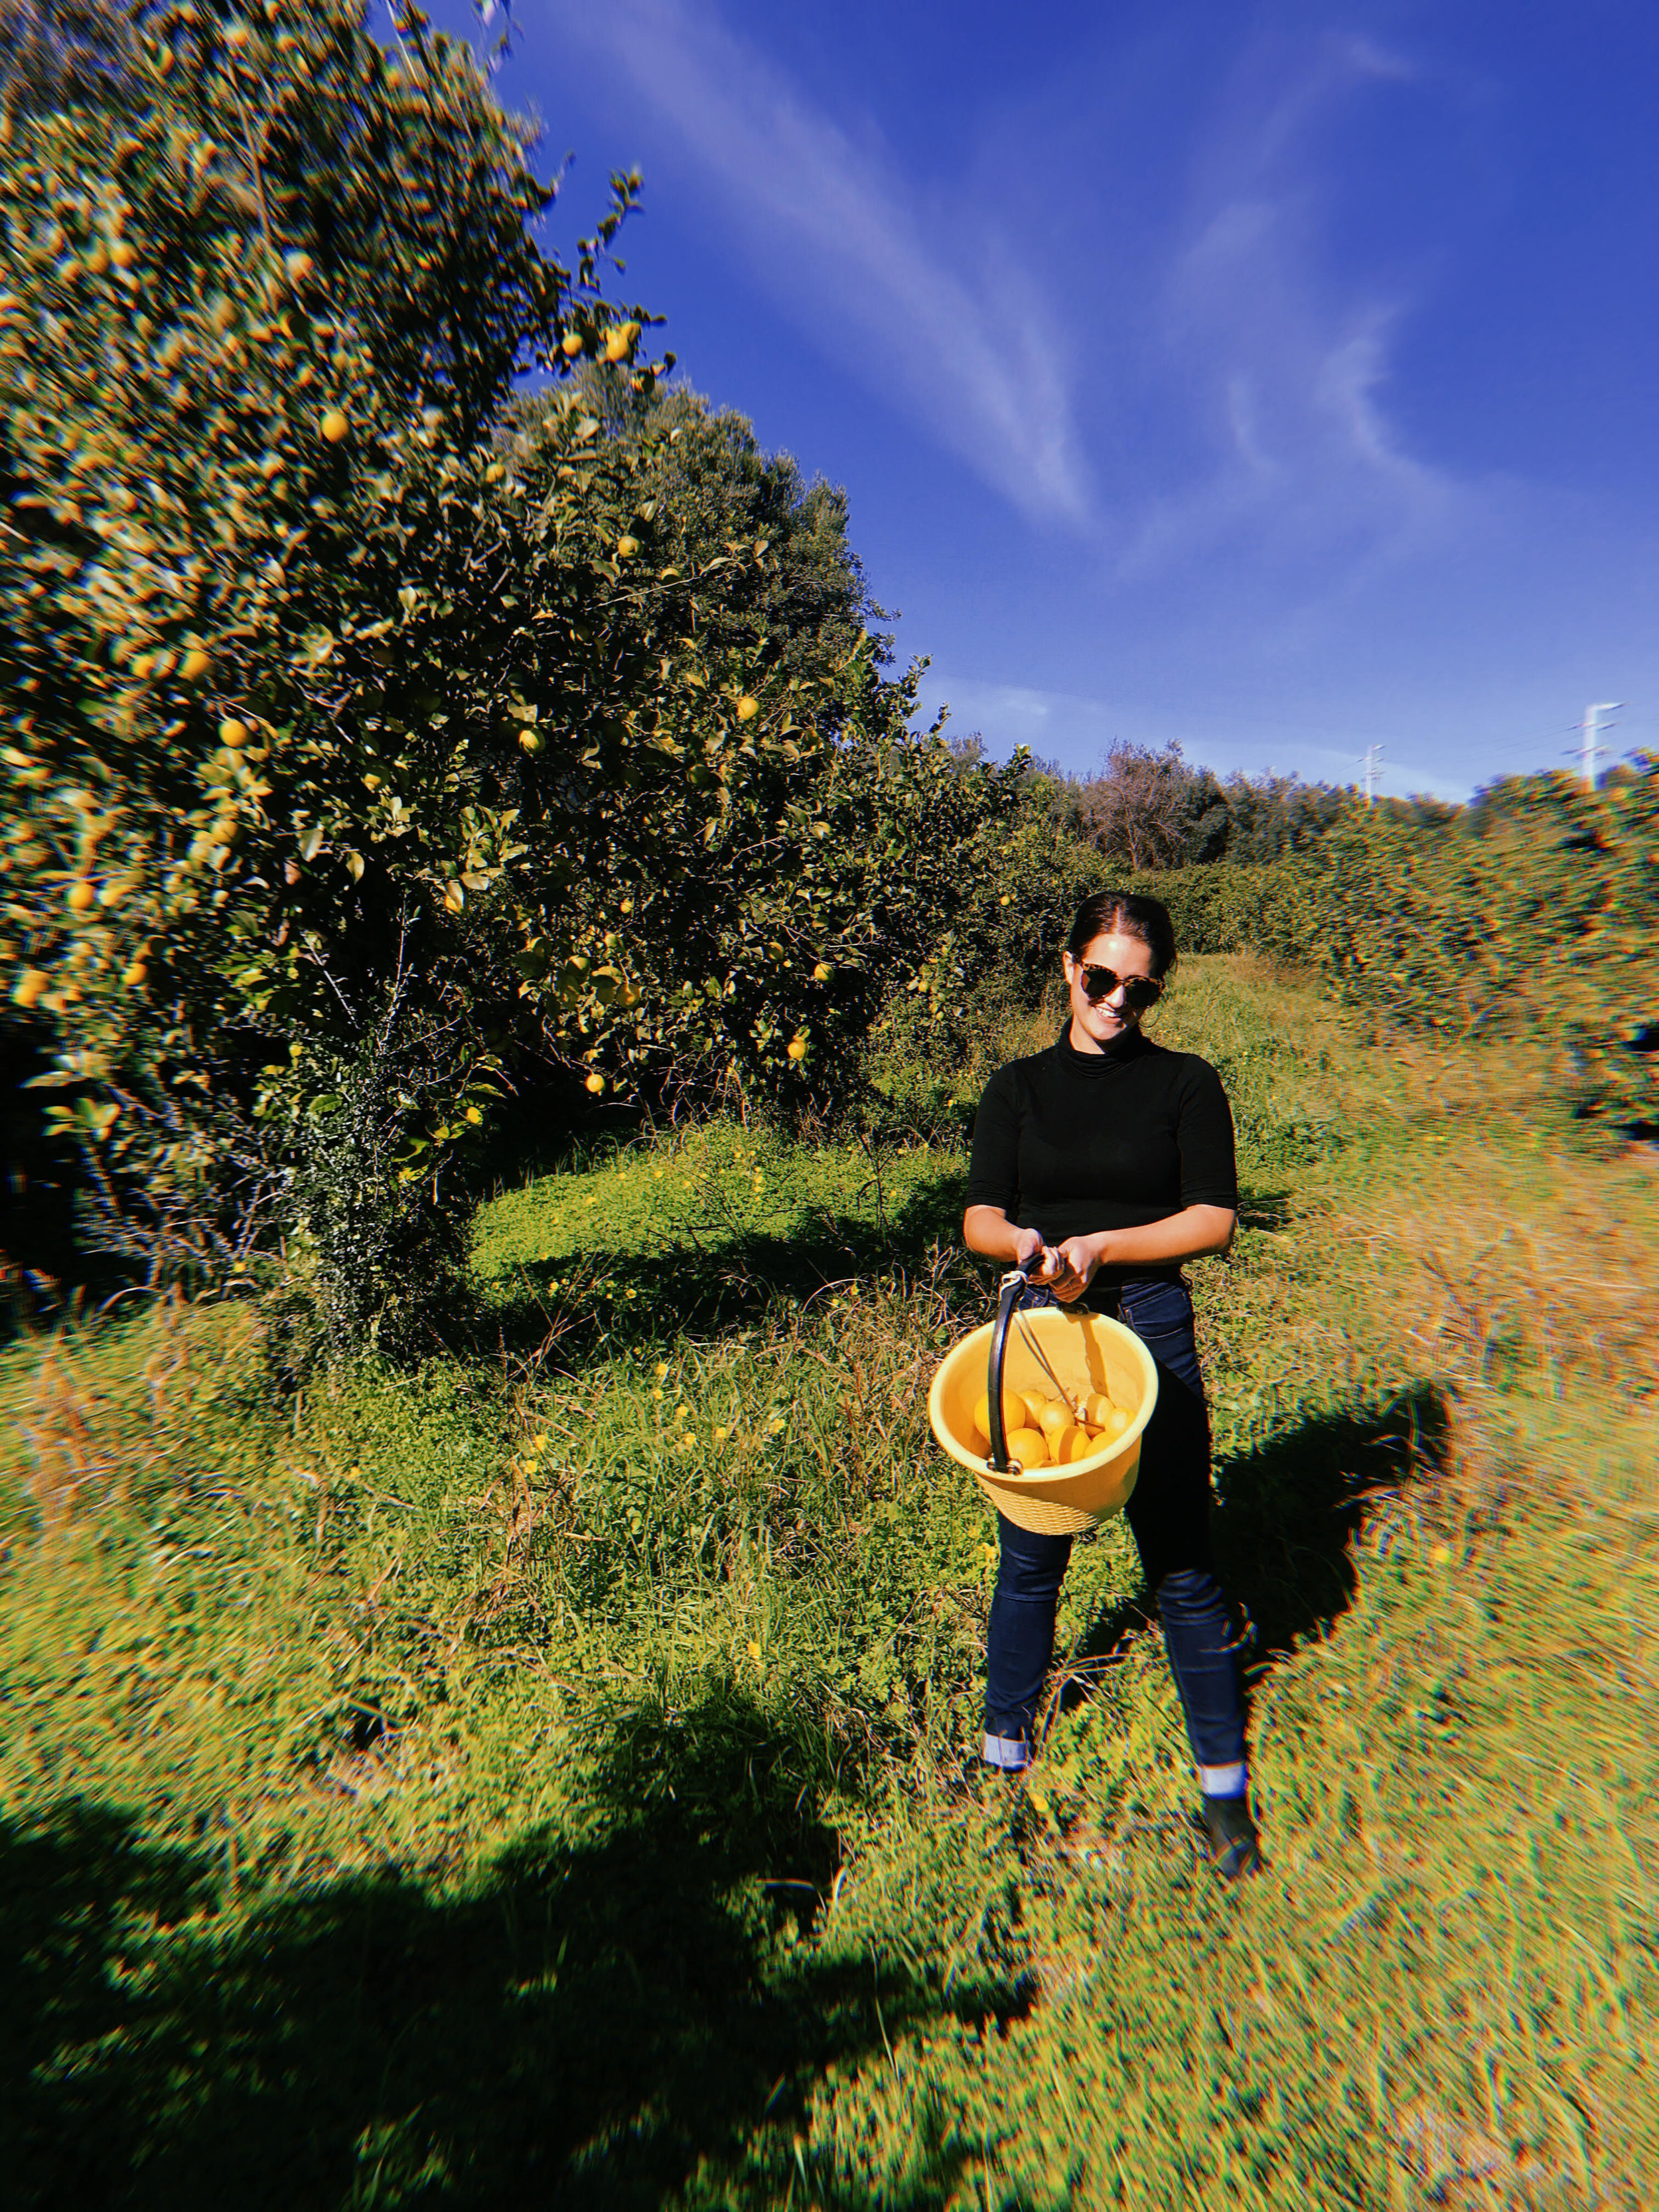 A photo of me picking lemons on a citrus grove in Noto, Sicily.